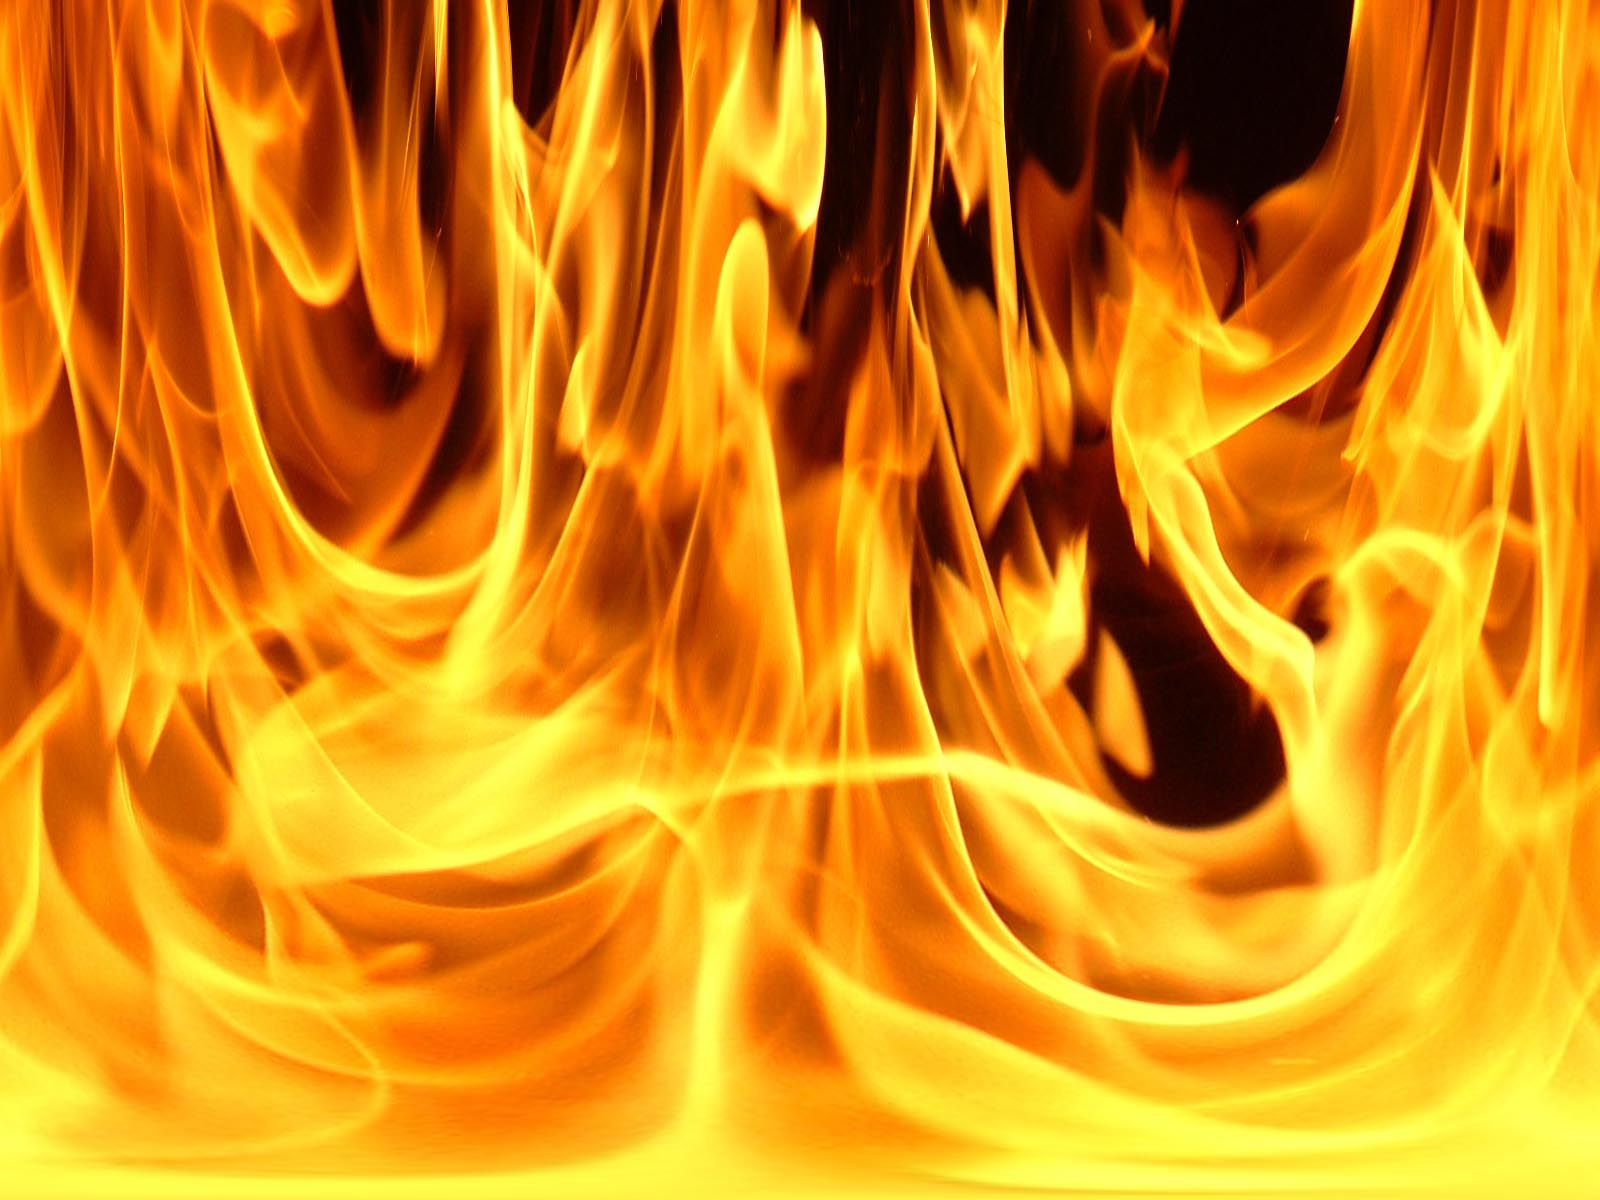 Eight injured in house fire in Pellissier - Bloemfontein Courant